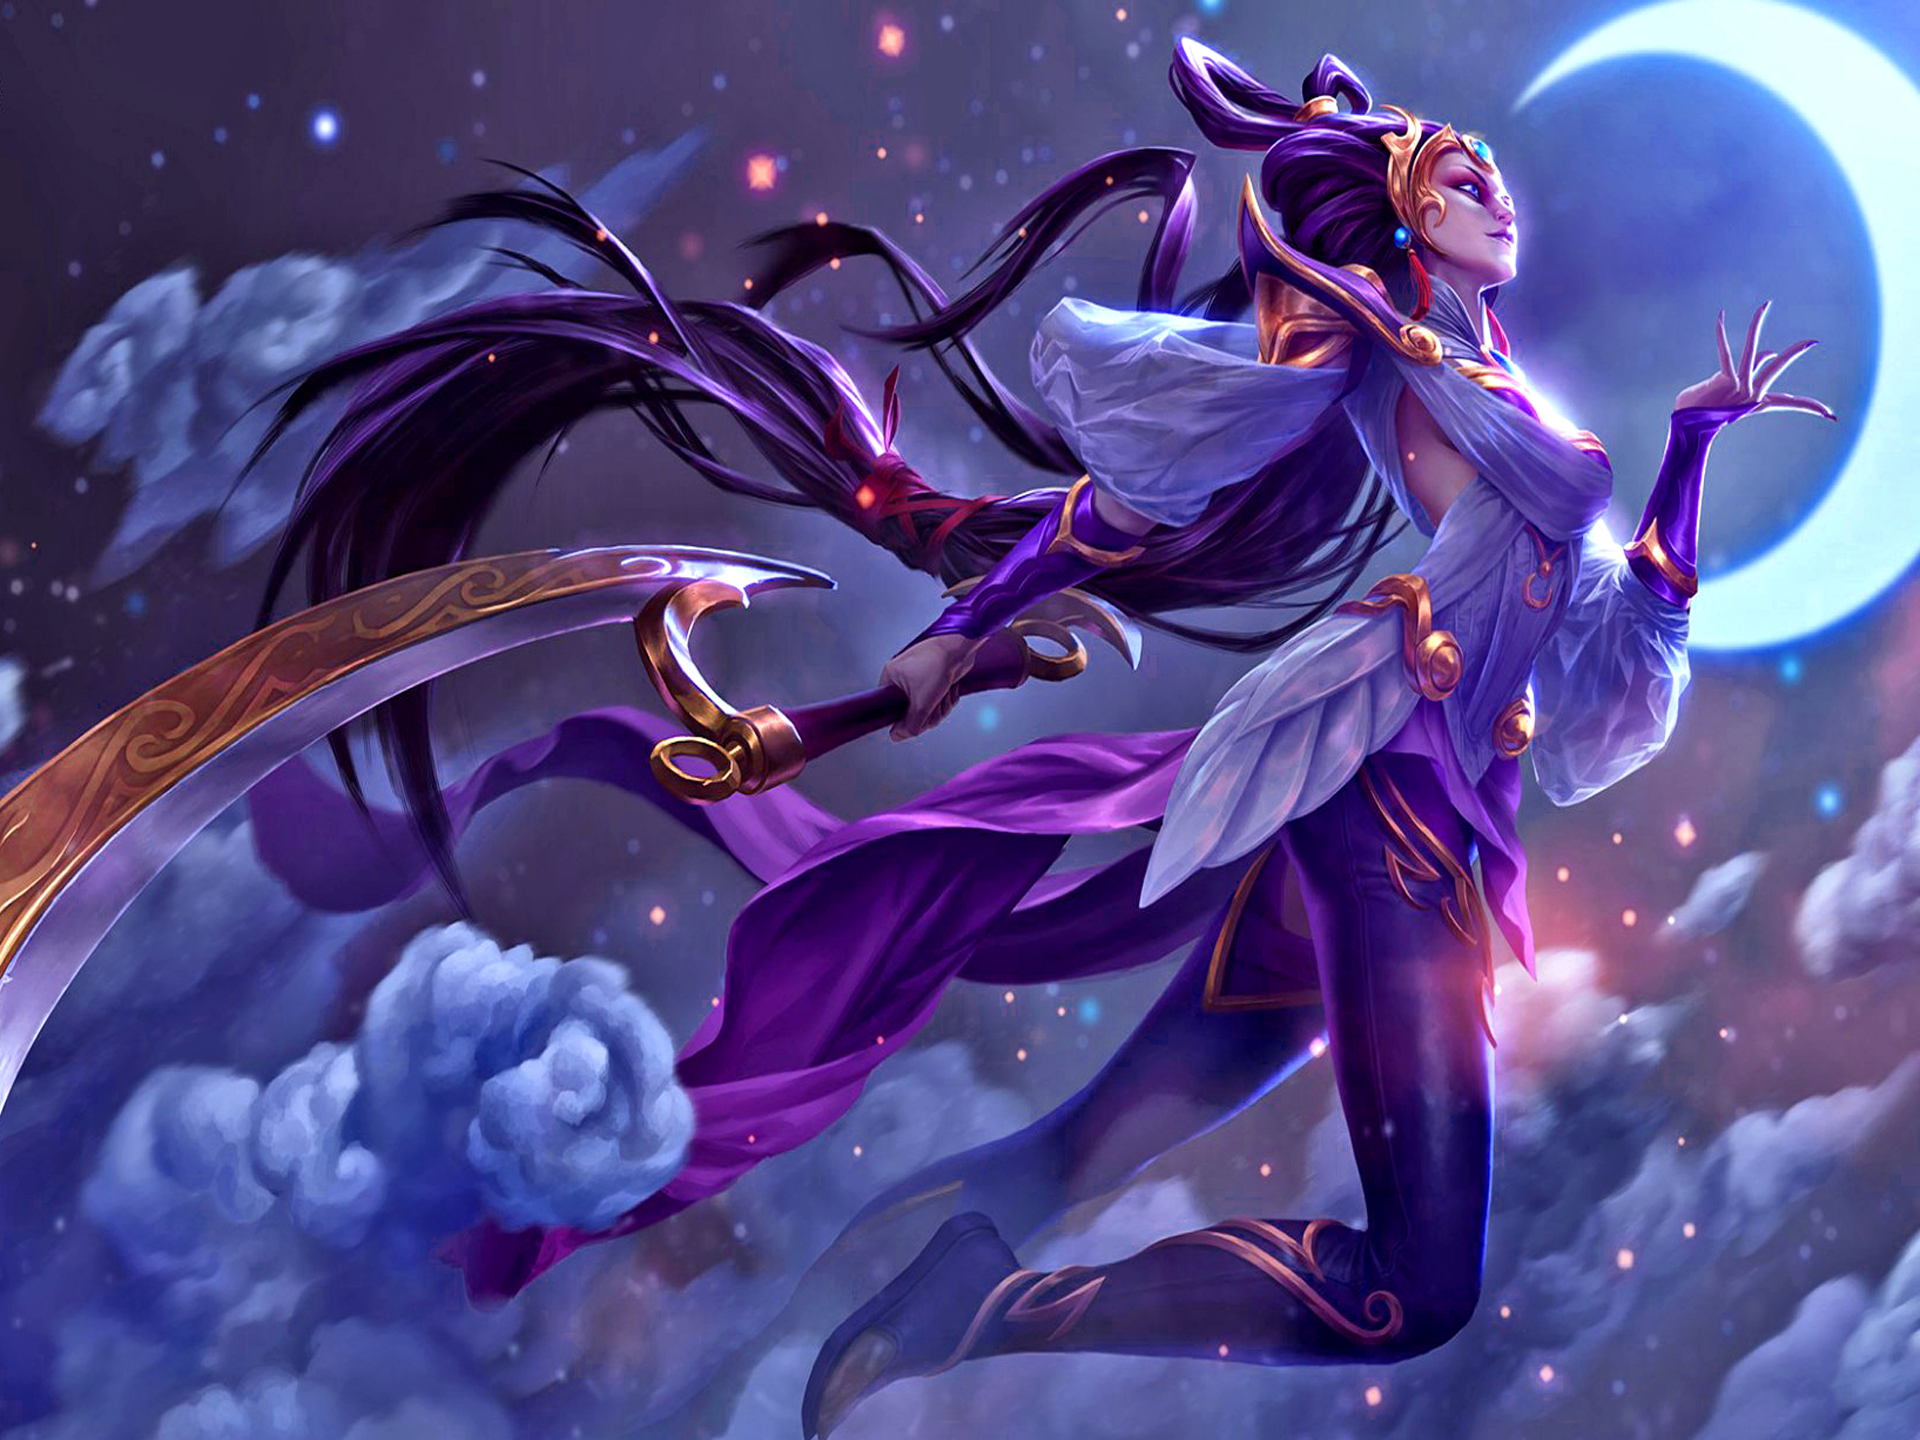 diana league of legends wallpaper hd background 11 1920x1440